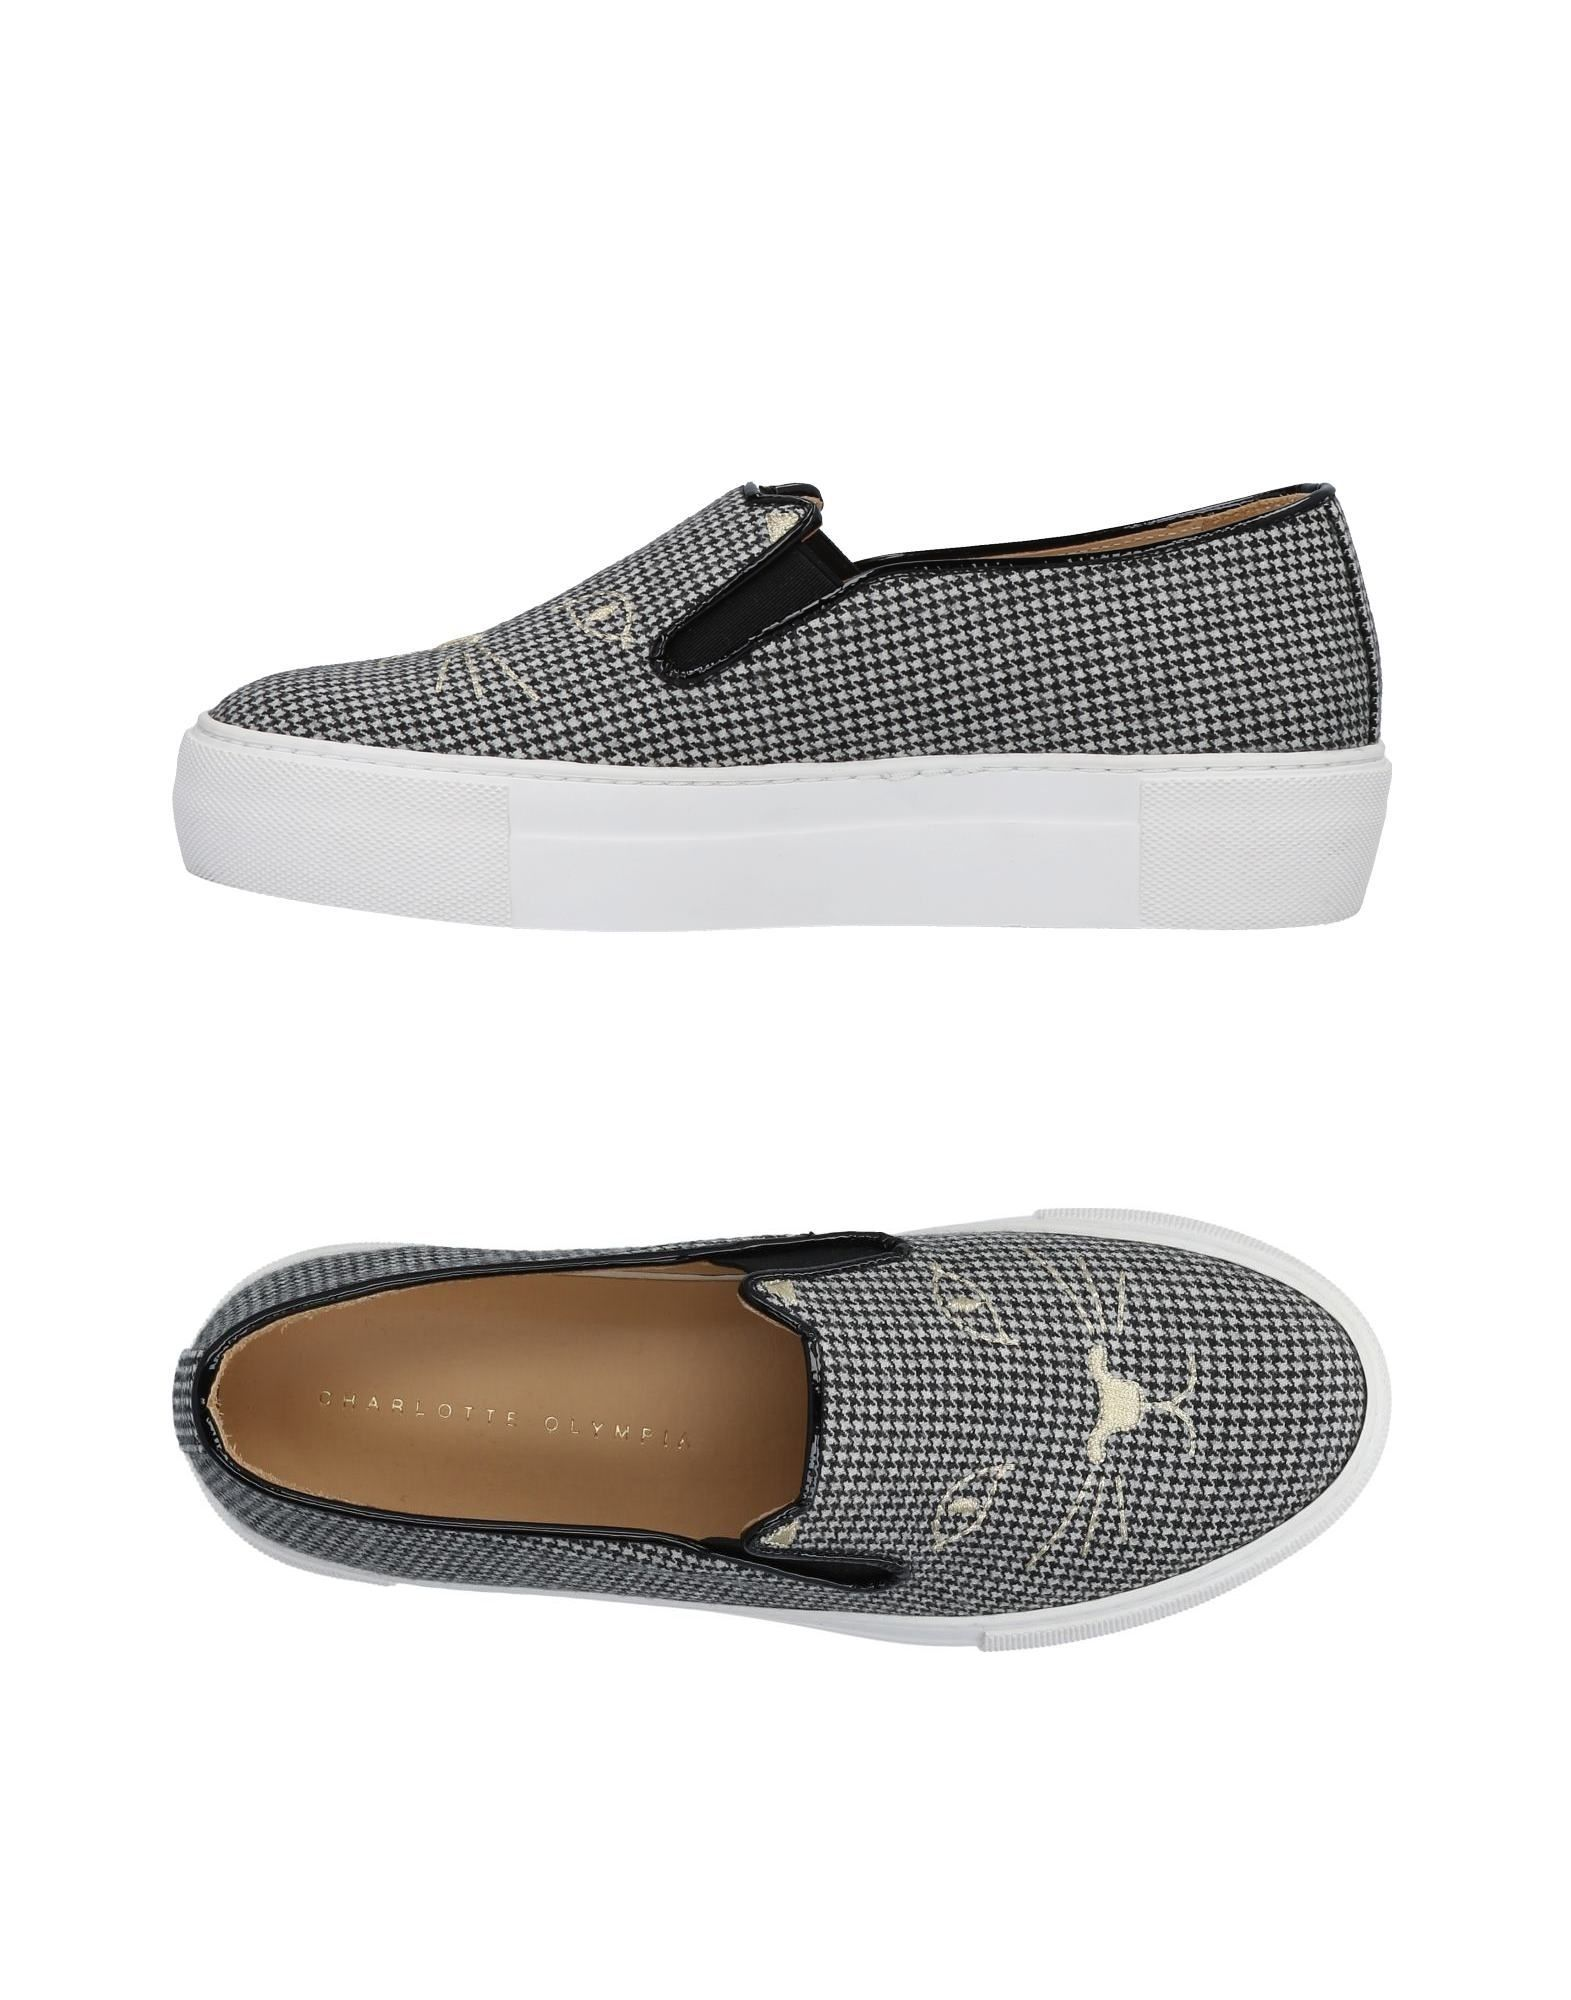 Charlotte Olympia Leopard Print Platform Sneakers In Houndstooth